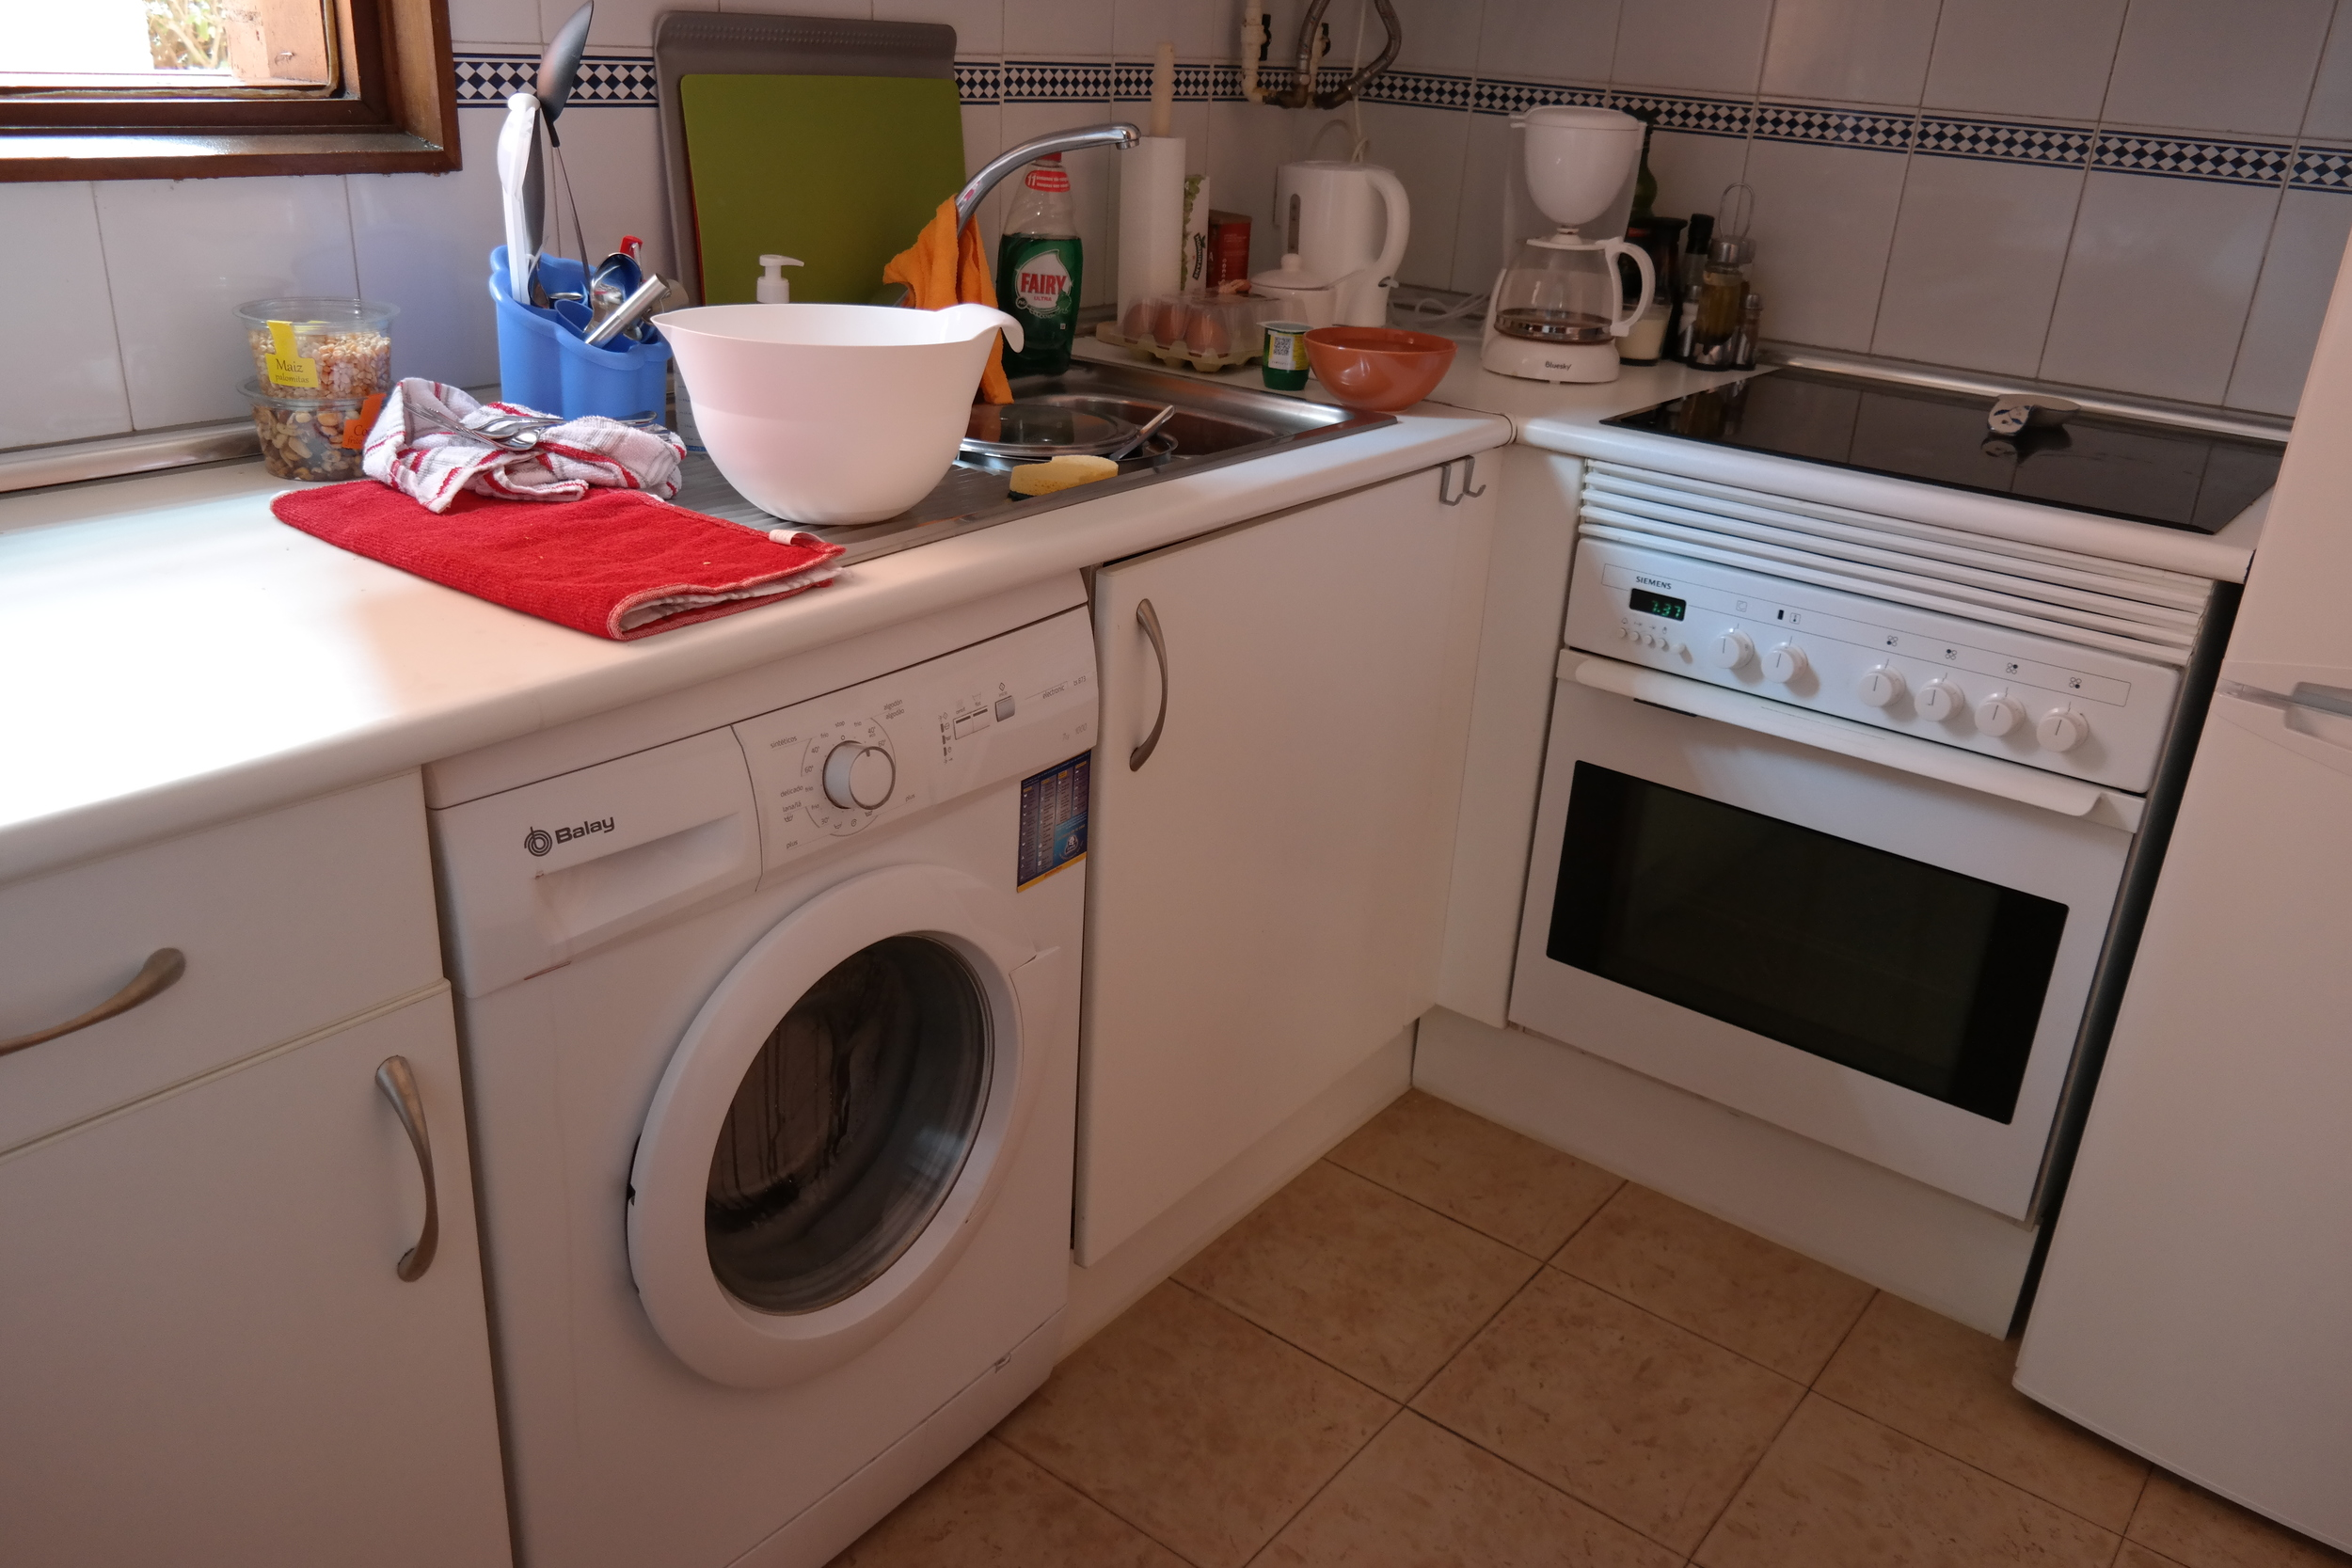 Yep, our washing machine is in our kitchen! Nothing like multi-tasking.